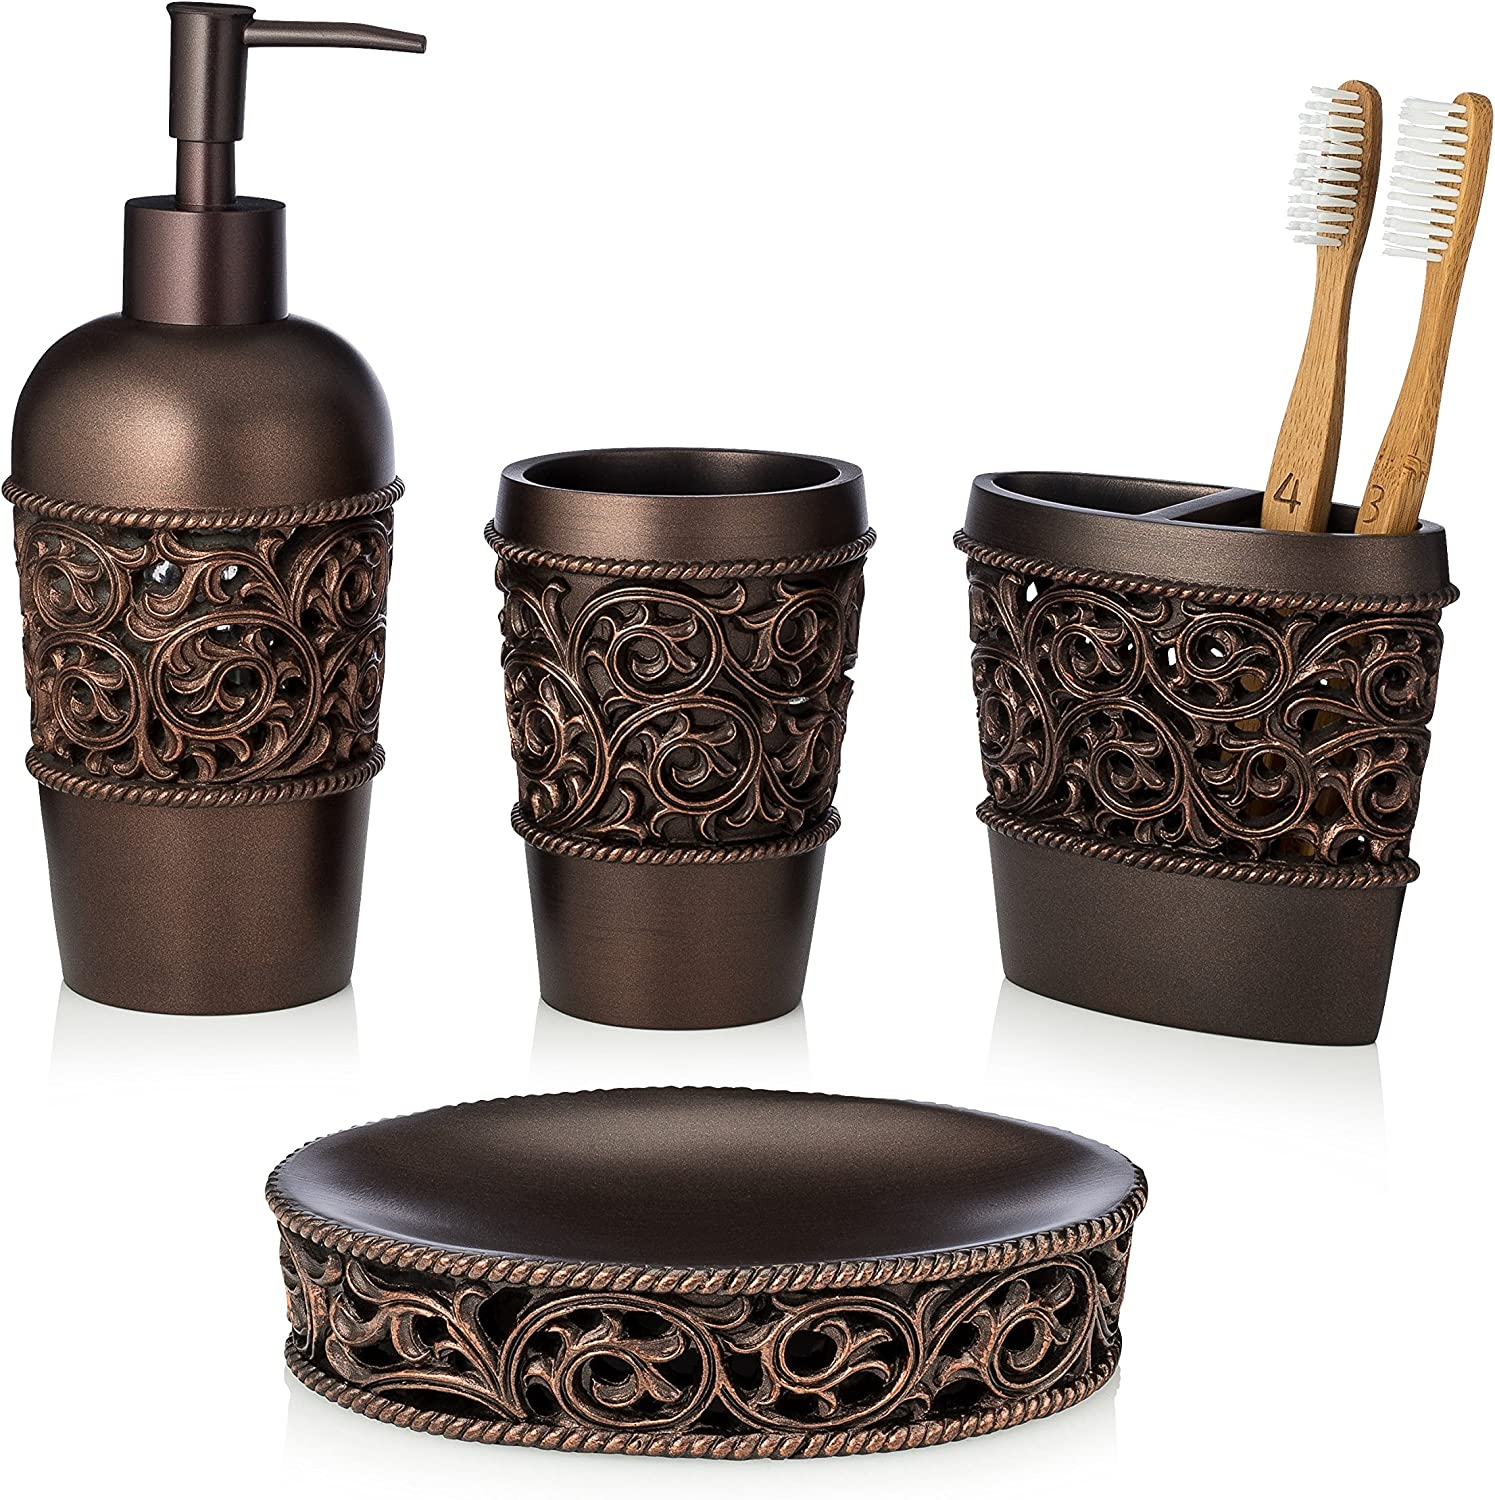 Amazon Com Essentra Home 4 Piece Bronze Bathroom Accessory Set Complete Set Includes Toothbrush Holder Lotion Dispenser Tumbler And Soap Dish Home Kitchen